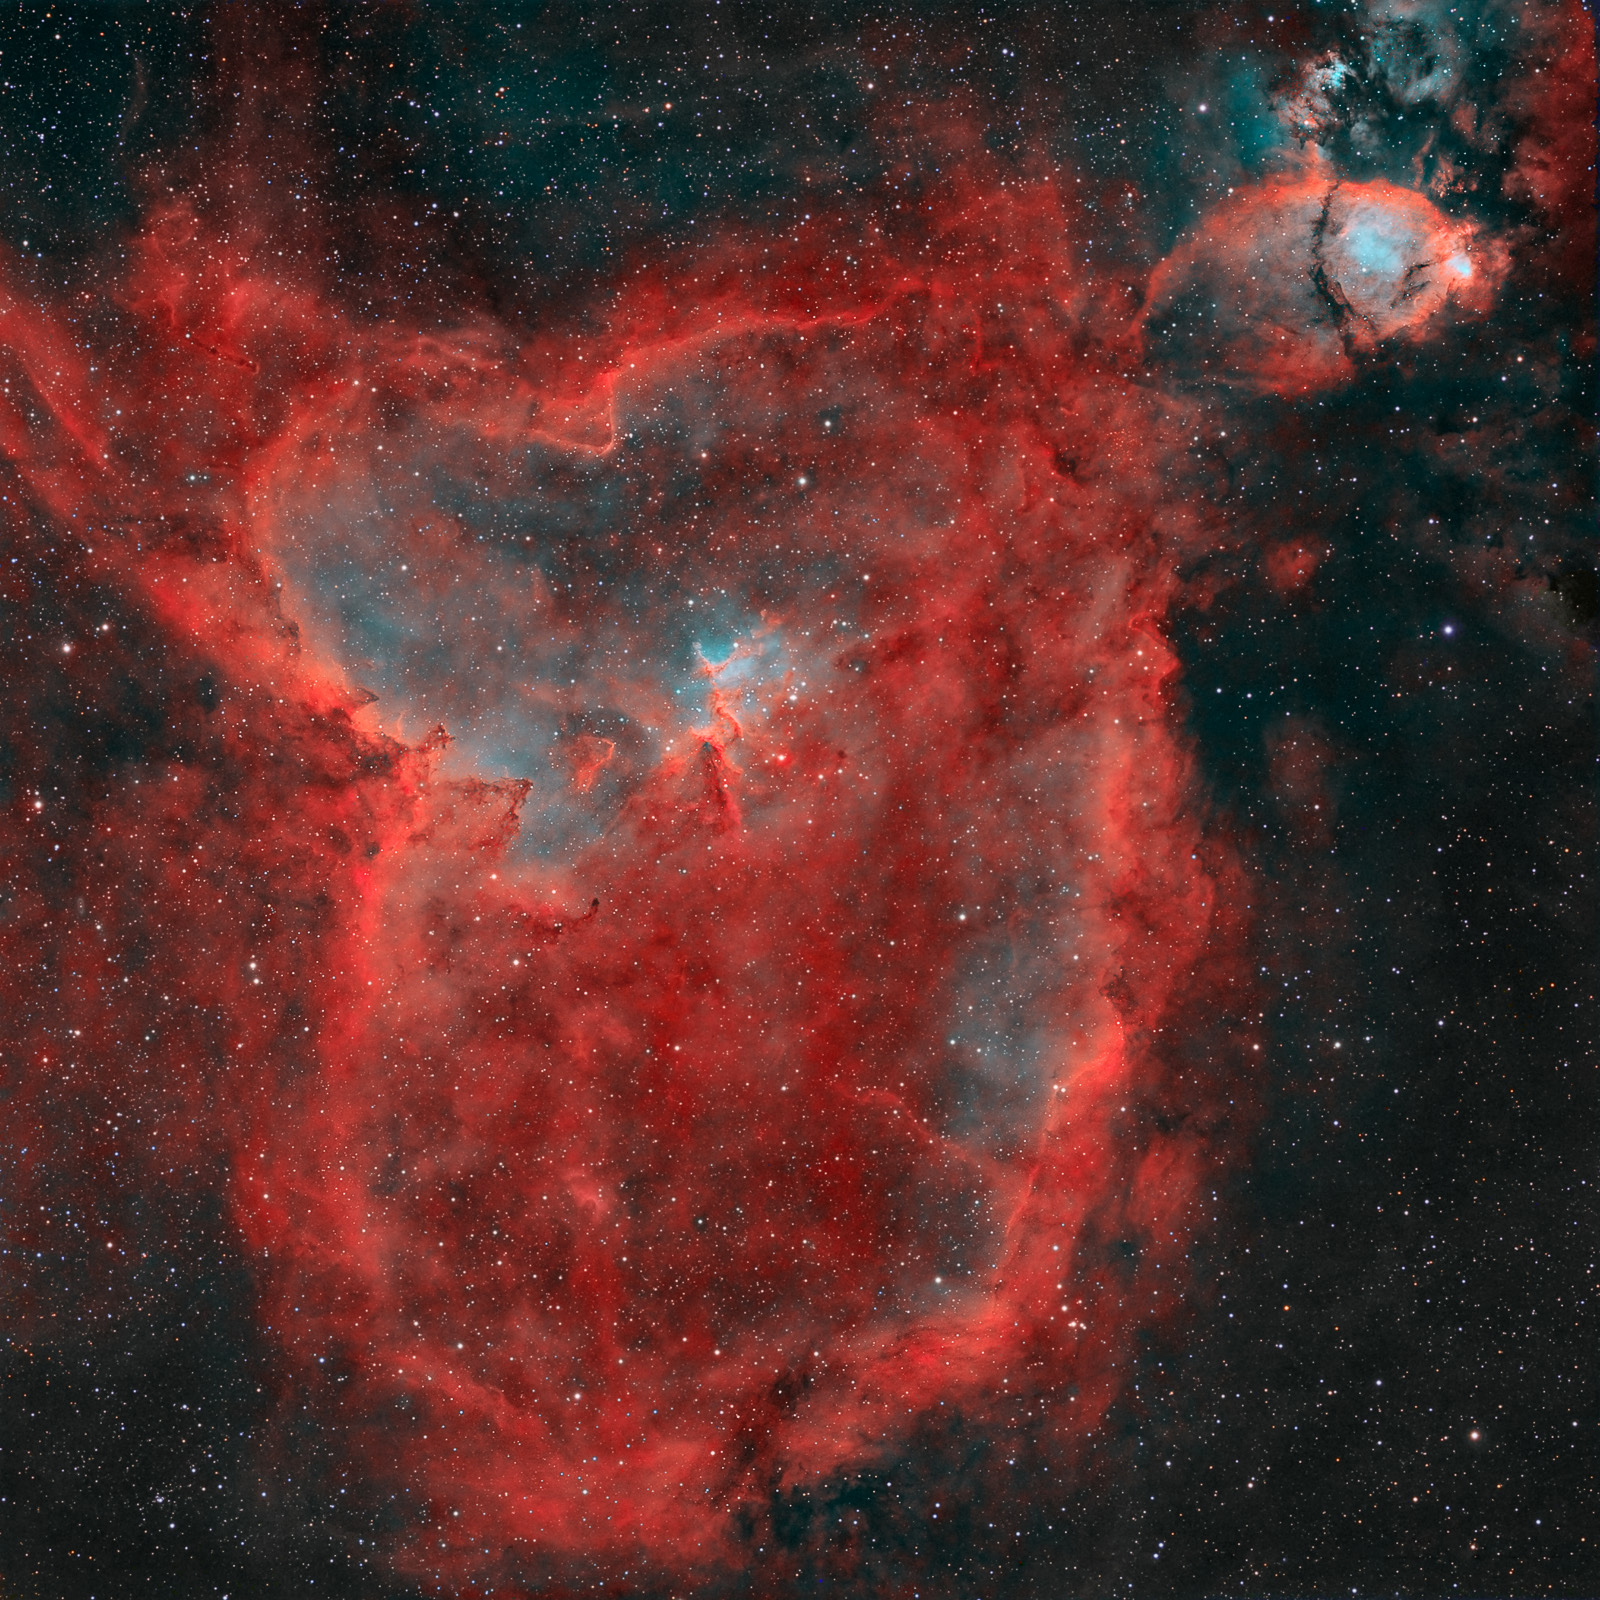 IC 1805: A Heart Nebula Collection - Starship Asterisk*